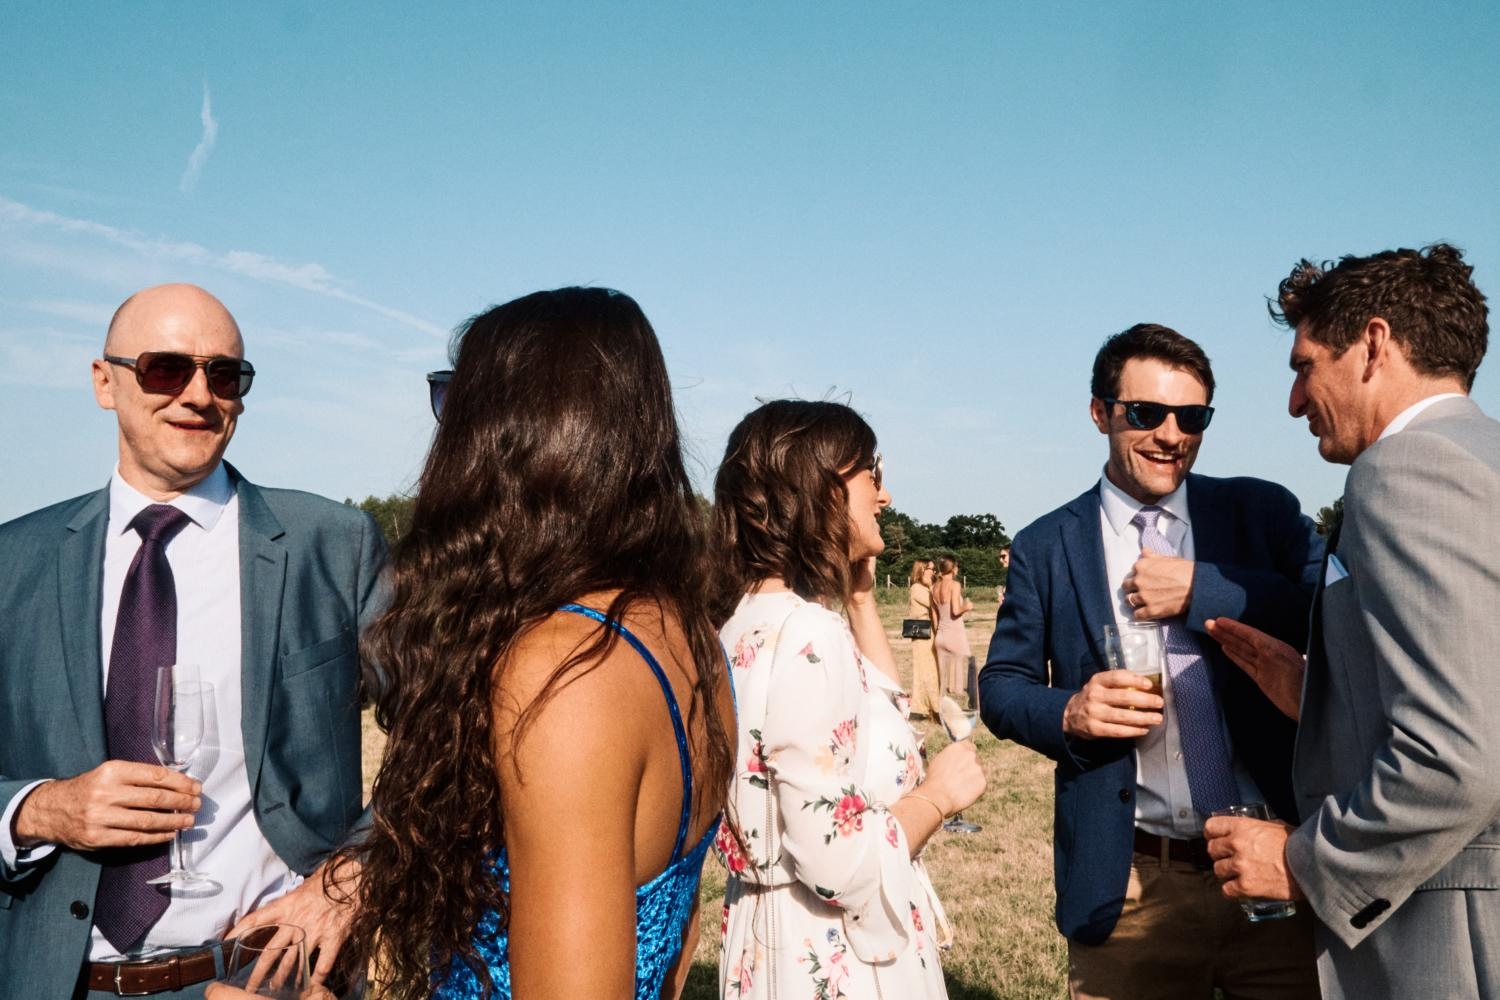 Wedding guests relaxing in a field